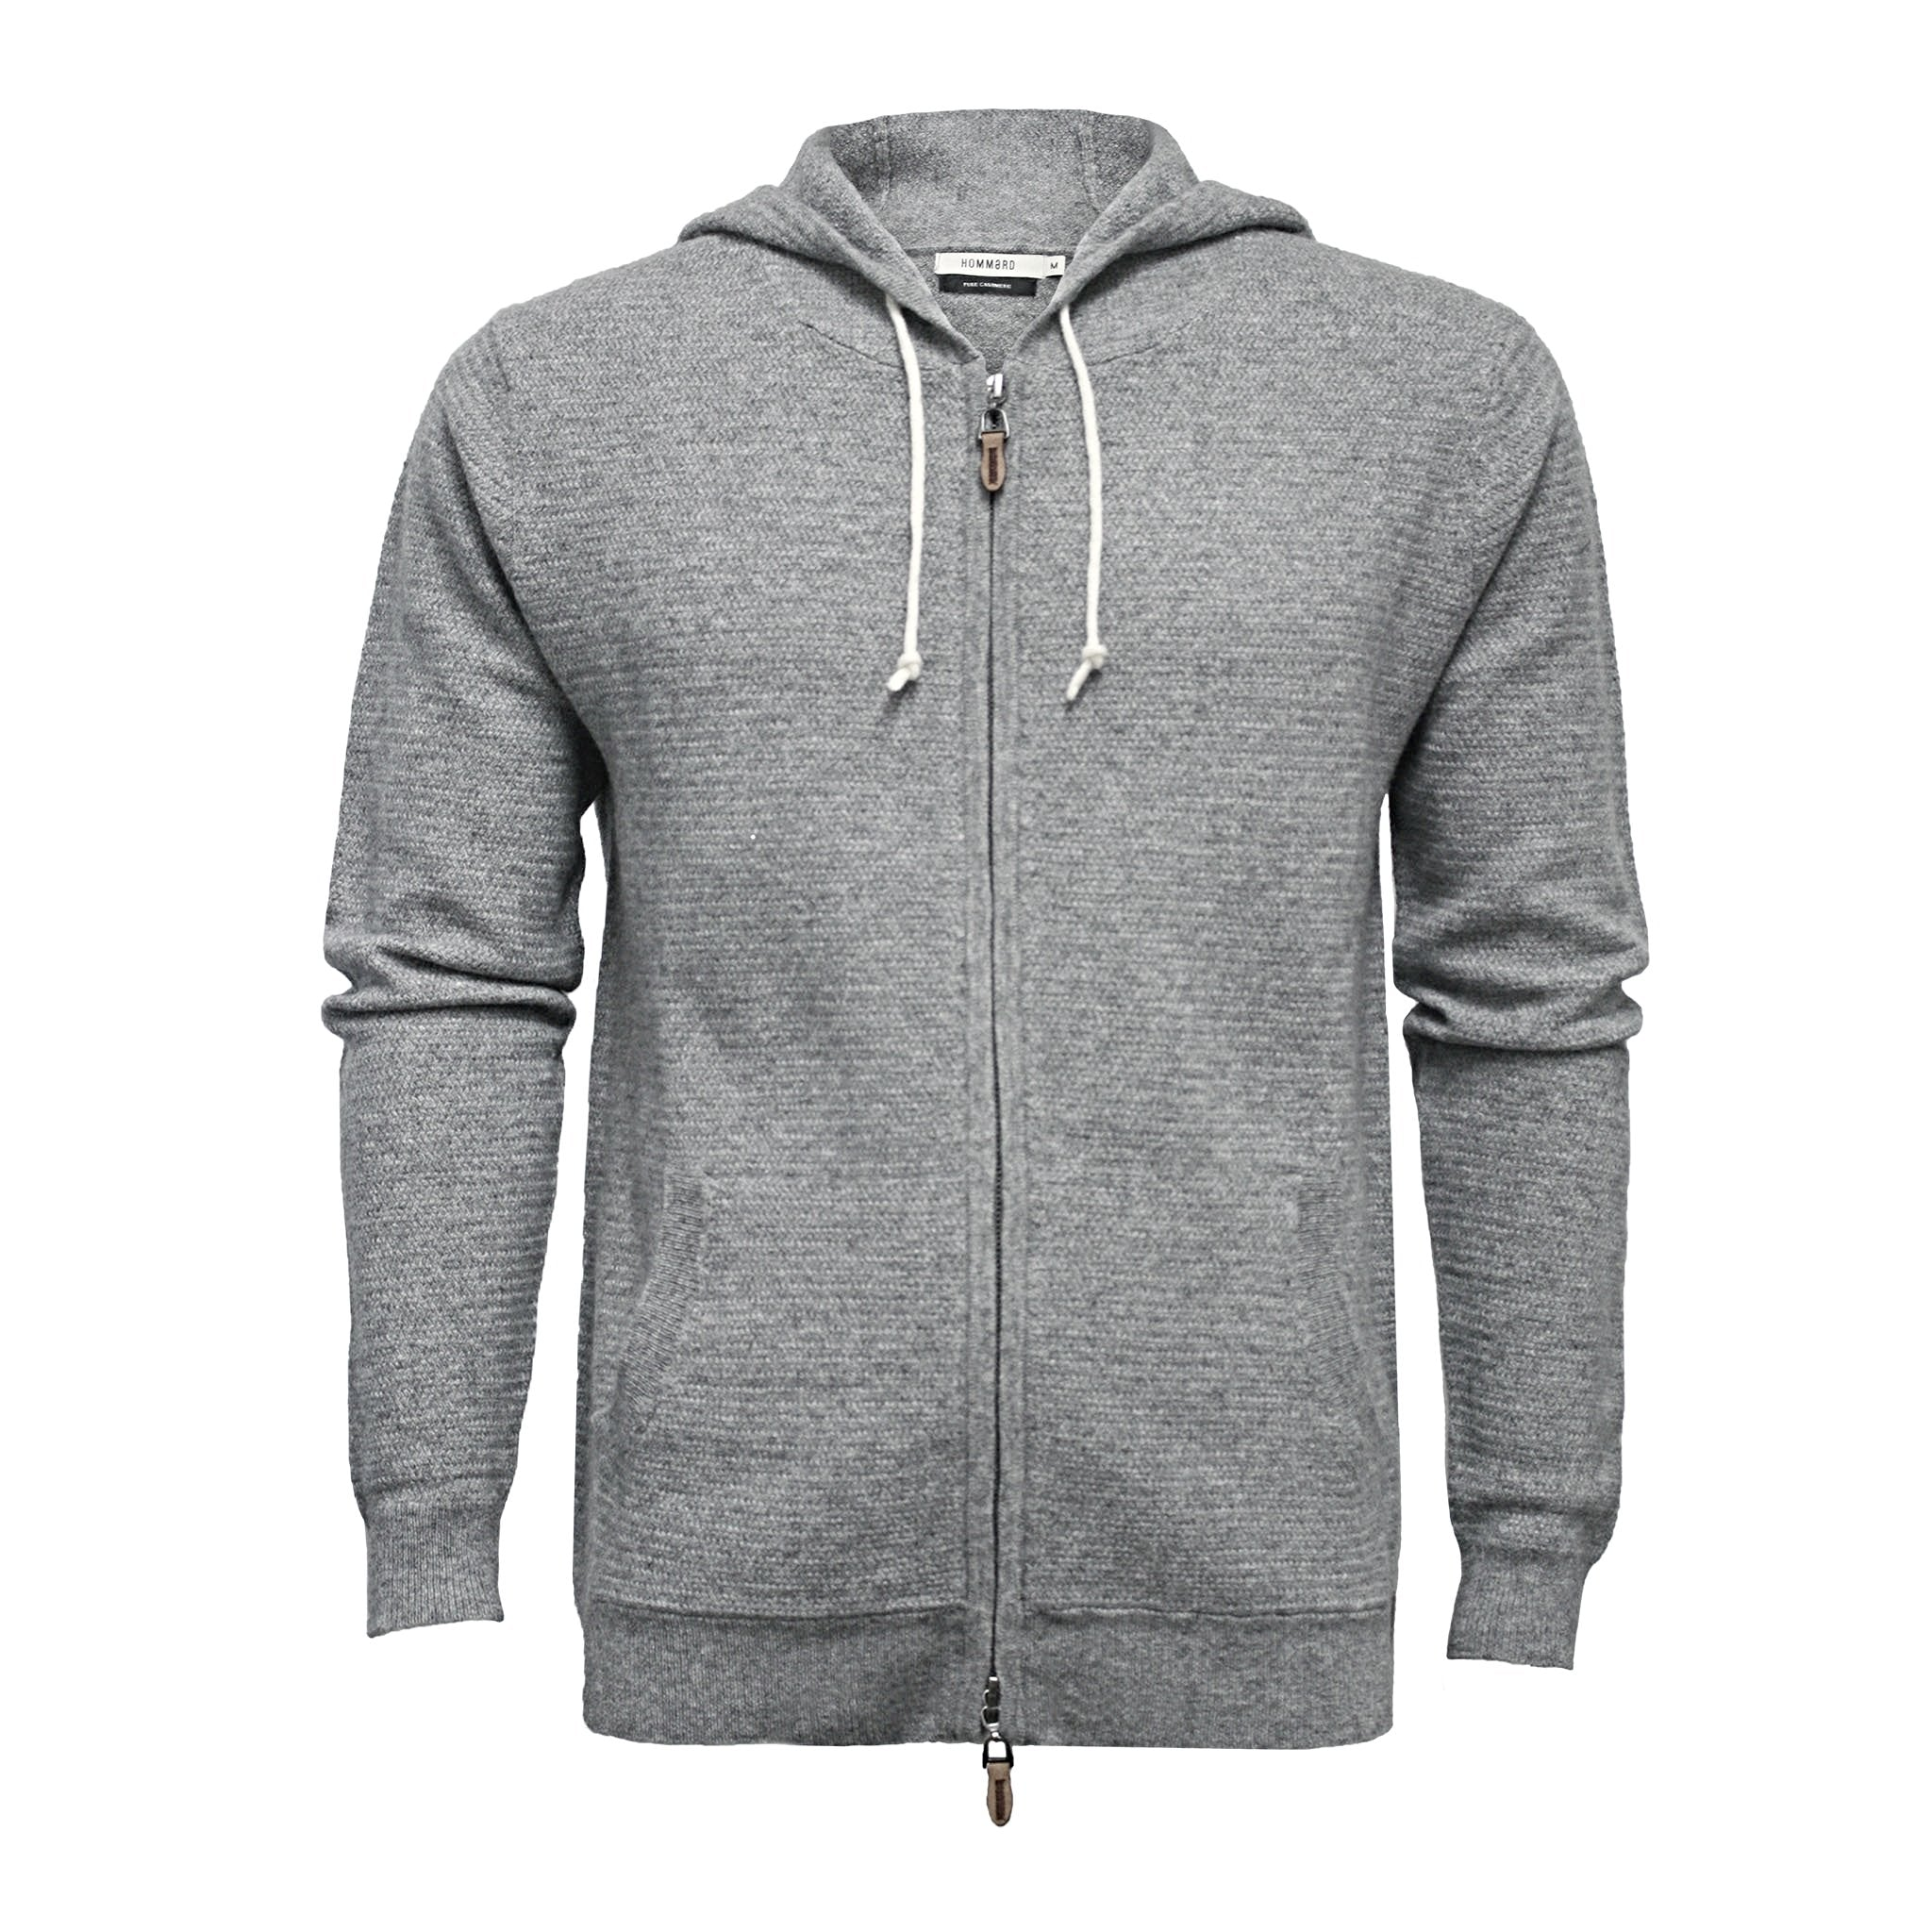 Men´s Hooded Cashmere Sweater in small Herringbone stitch Cervinia - Hommard